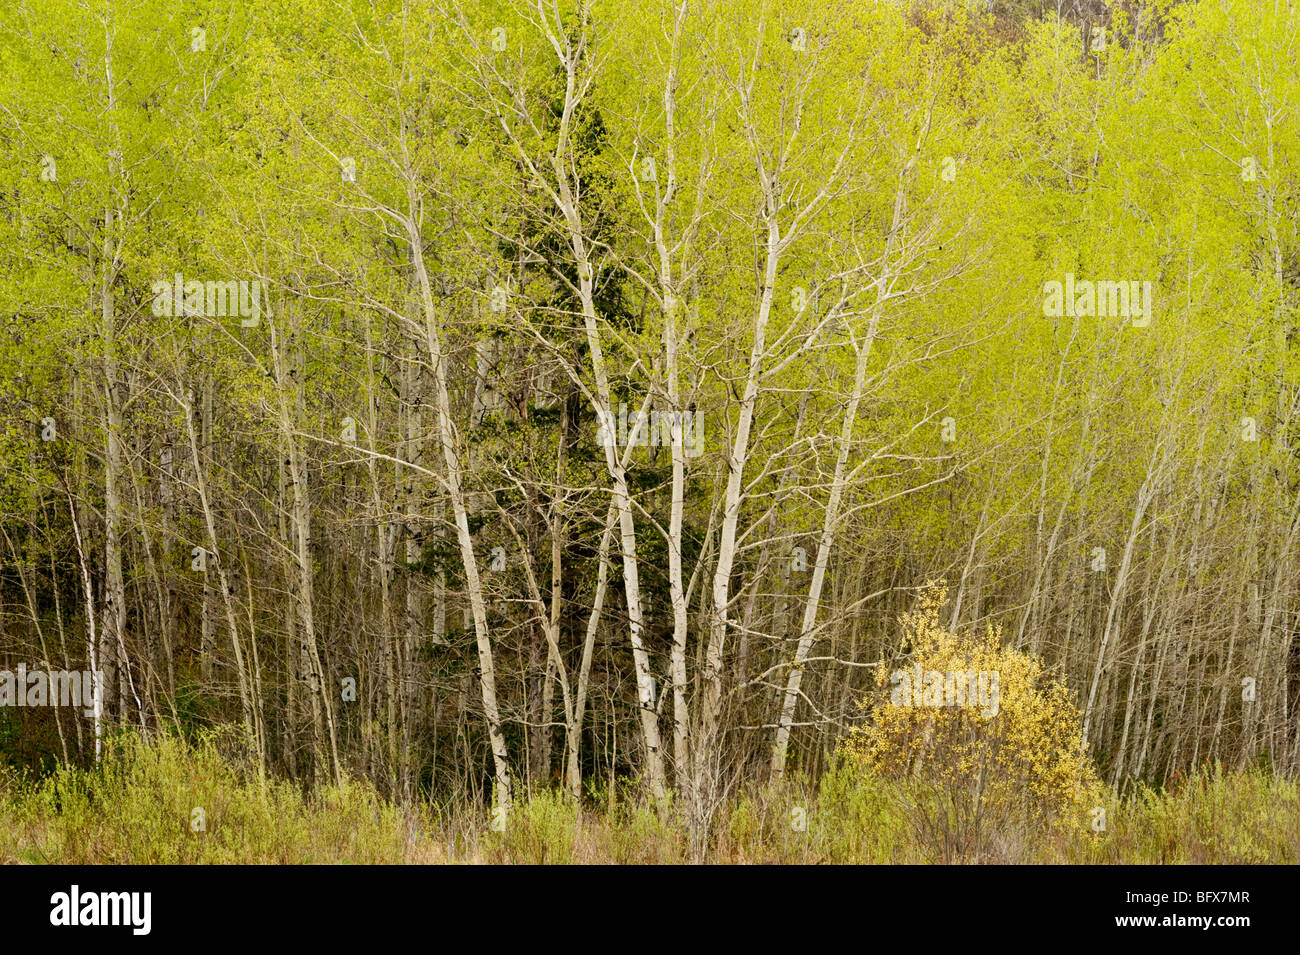 Fresh foliage emerging in aspens on hillside at edge of meadow, Greater Sudbury, Ontario, Canada - Stock Image